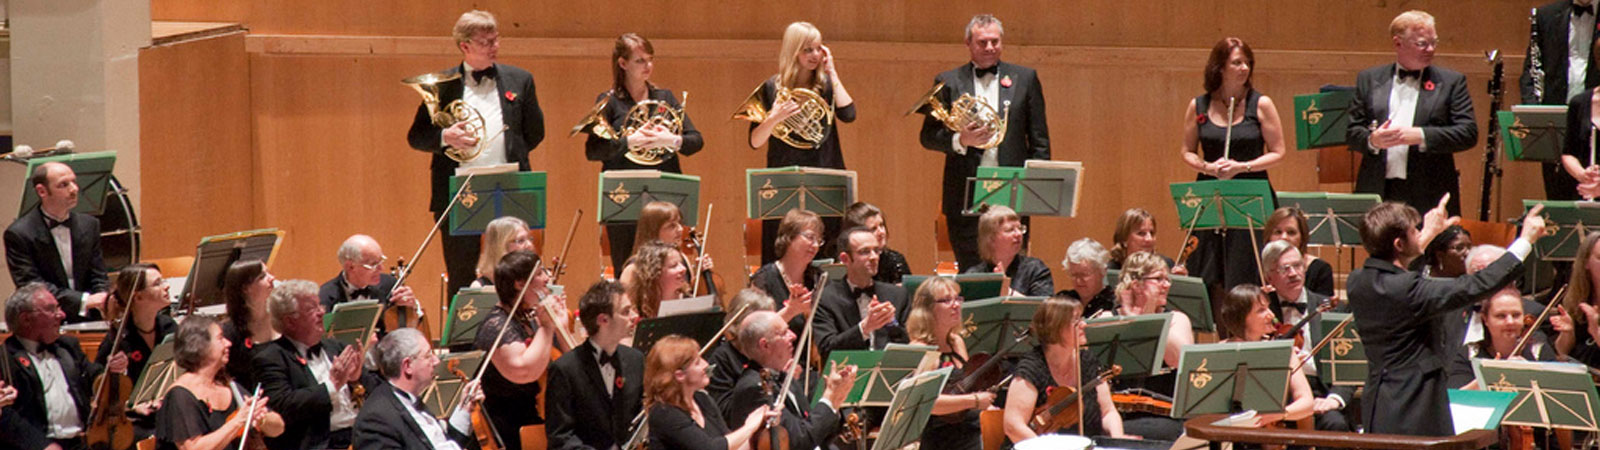 LSO Photo by Paul Cole